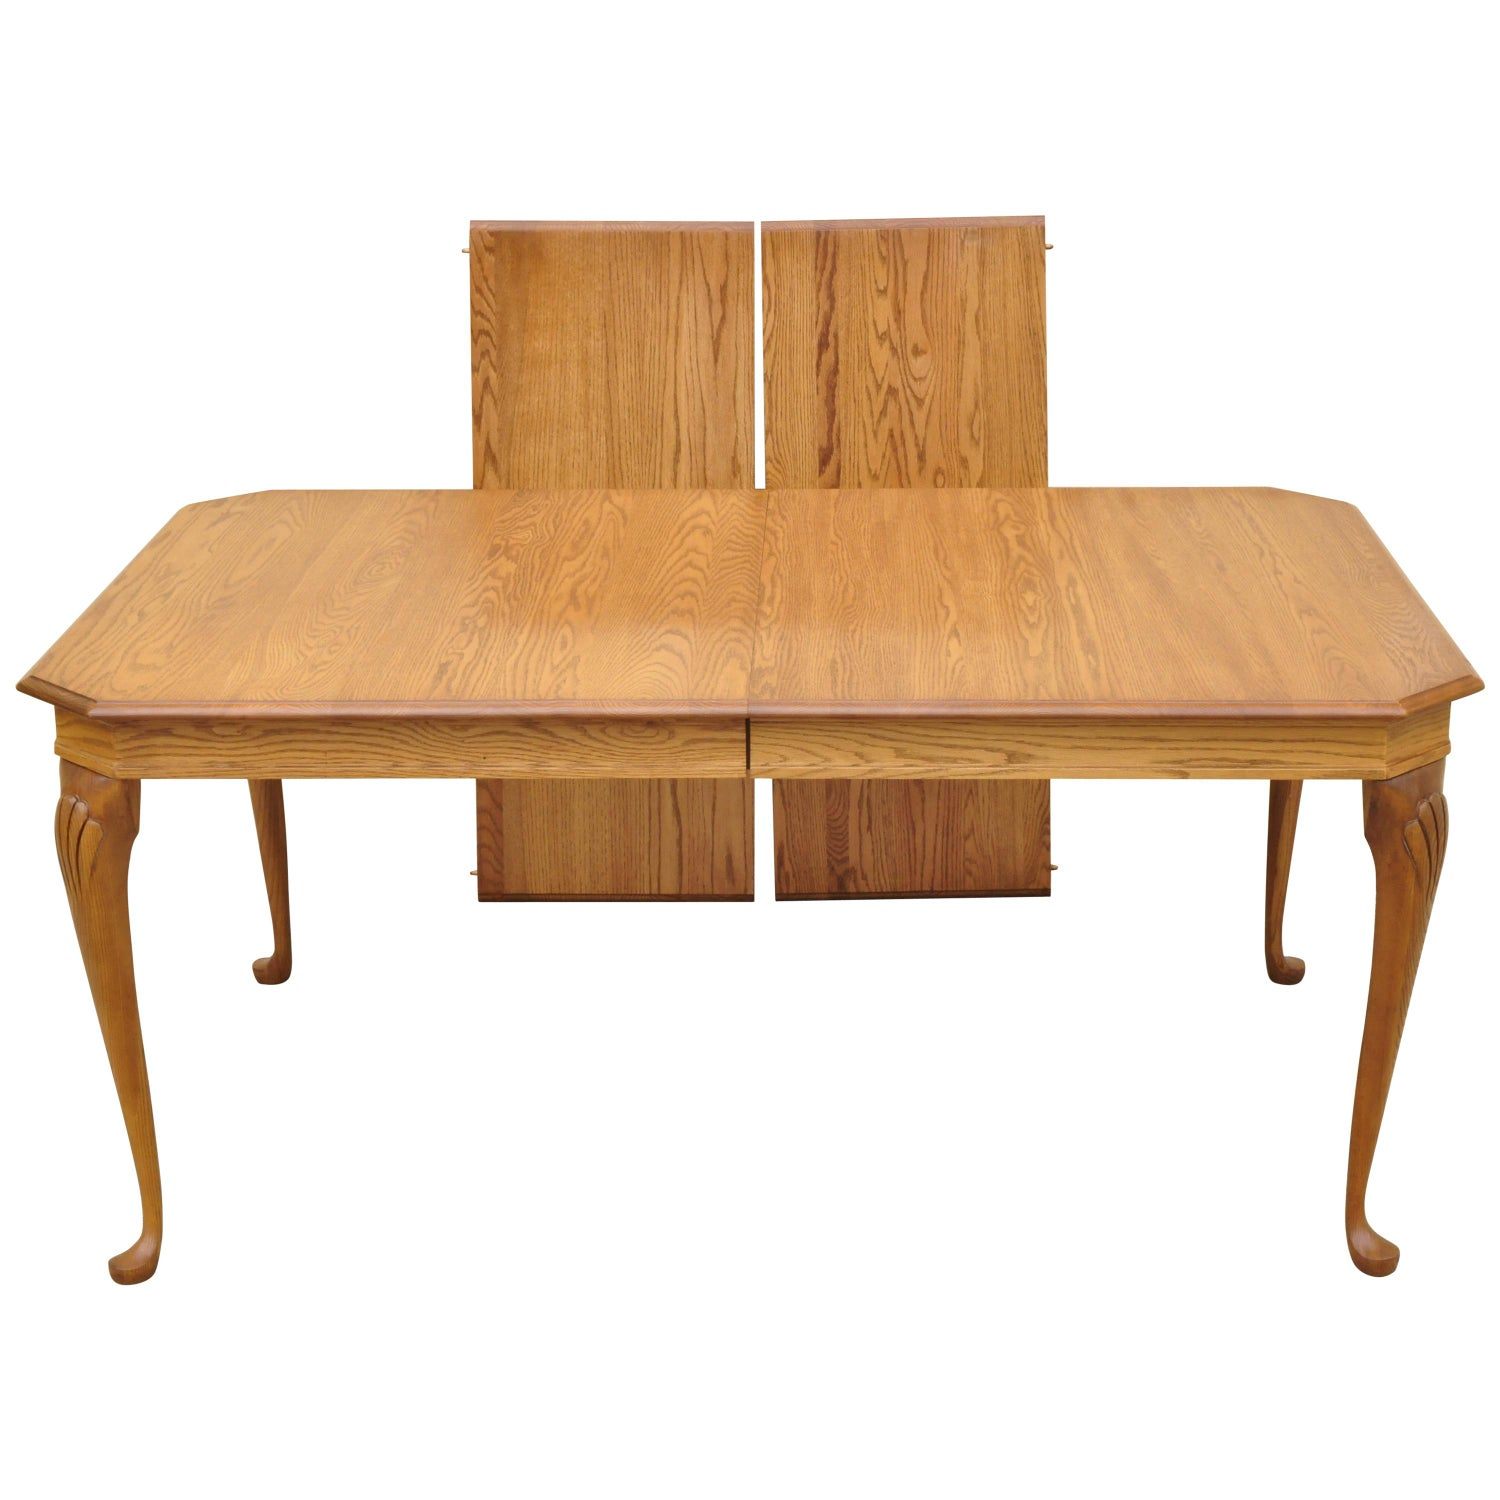 Pennsylvania House Stonehouse Oak Collection Queen Anne Dining Table W 2 Leaves For Sale At 1stdibs